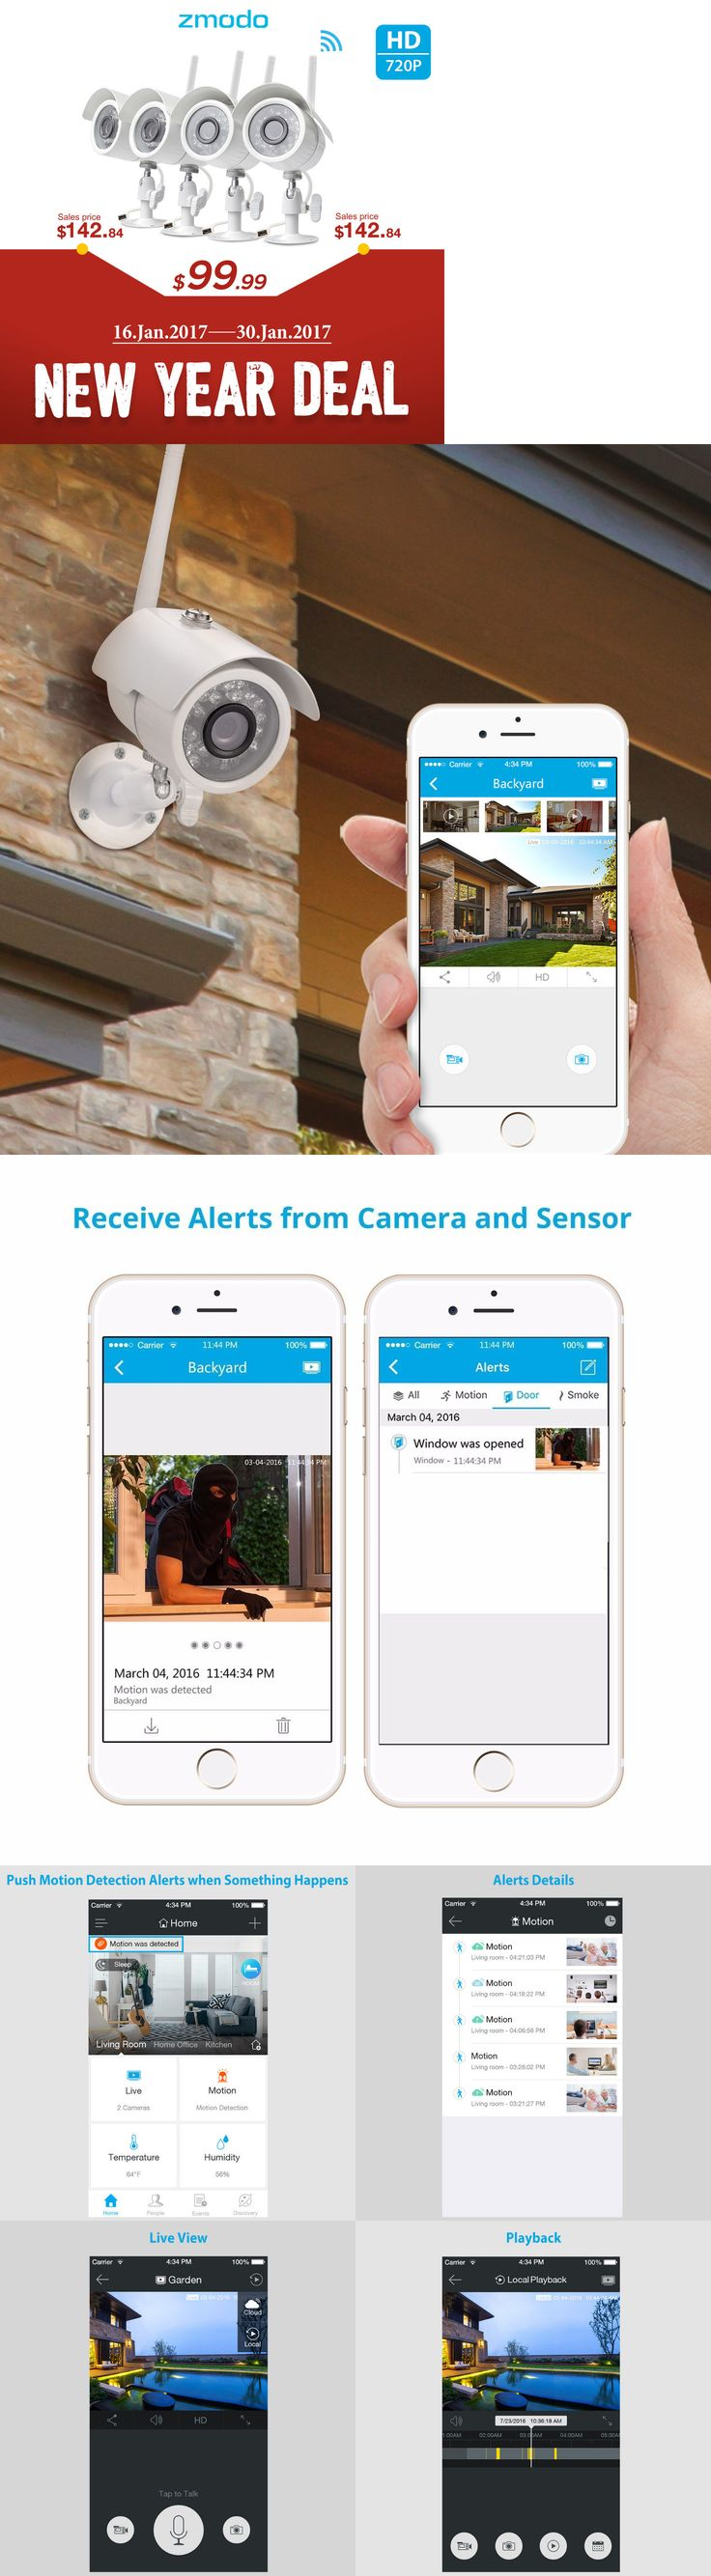 Surveillance Security Systems: Zmodo 720P Hd Outdoor Ip Network Ir Night Vison Wireless Camera Security System BUY IT NOW ONLY: $99.99